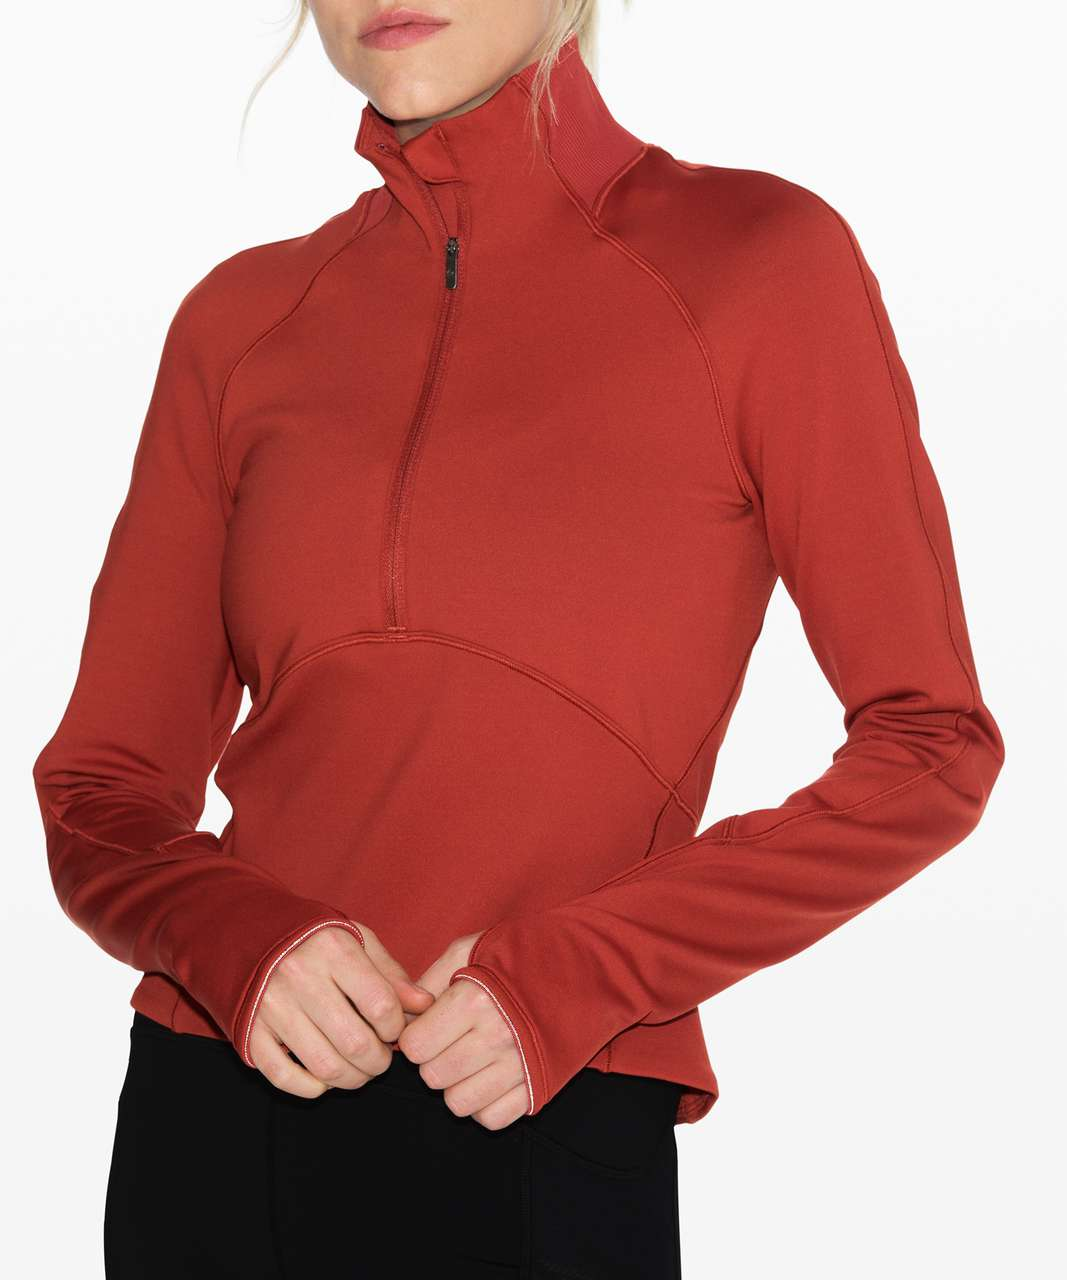 Lululemon Always Alert 1/2 Zip - Magma